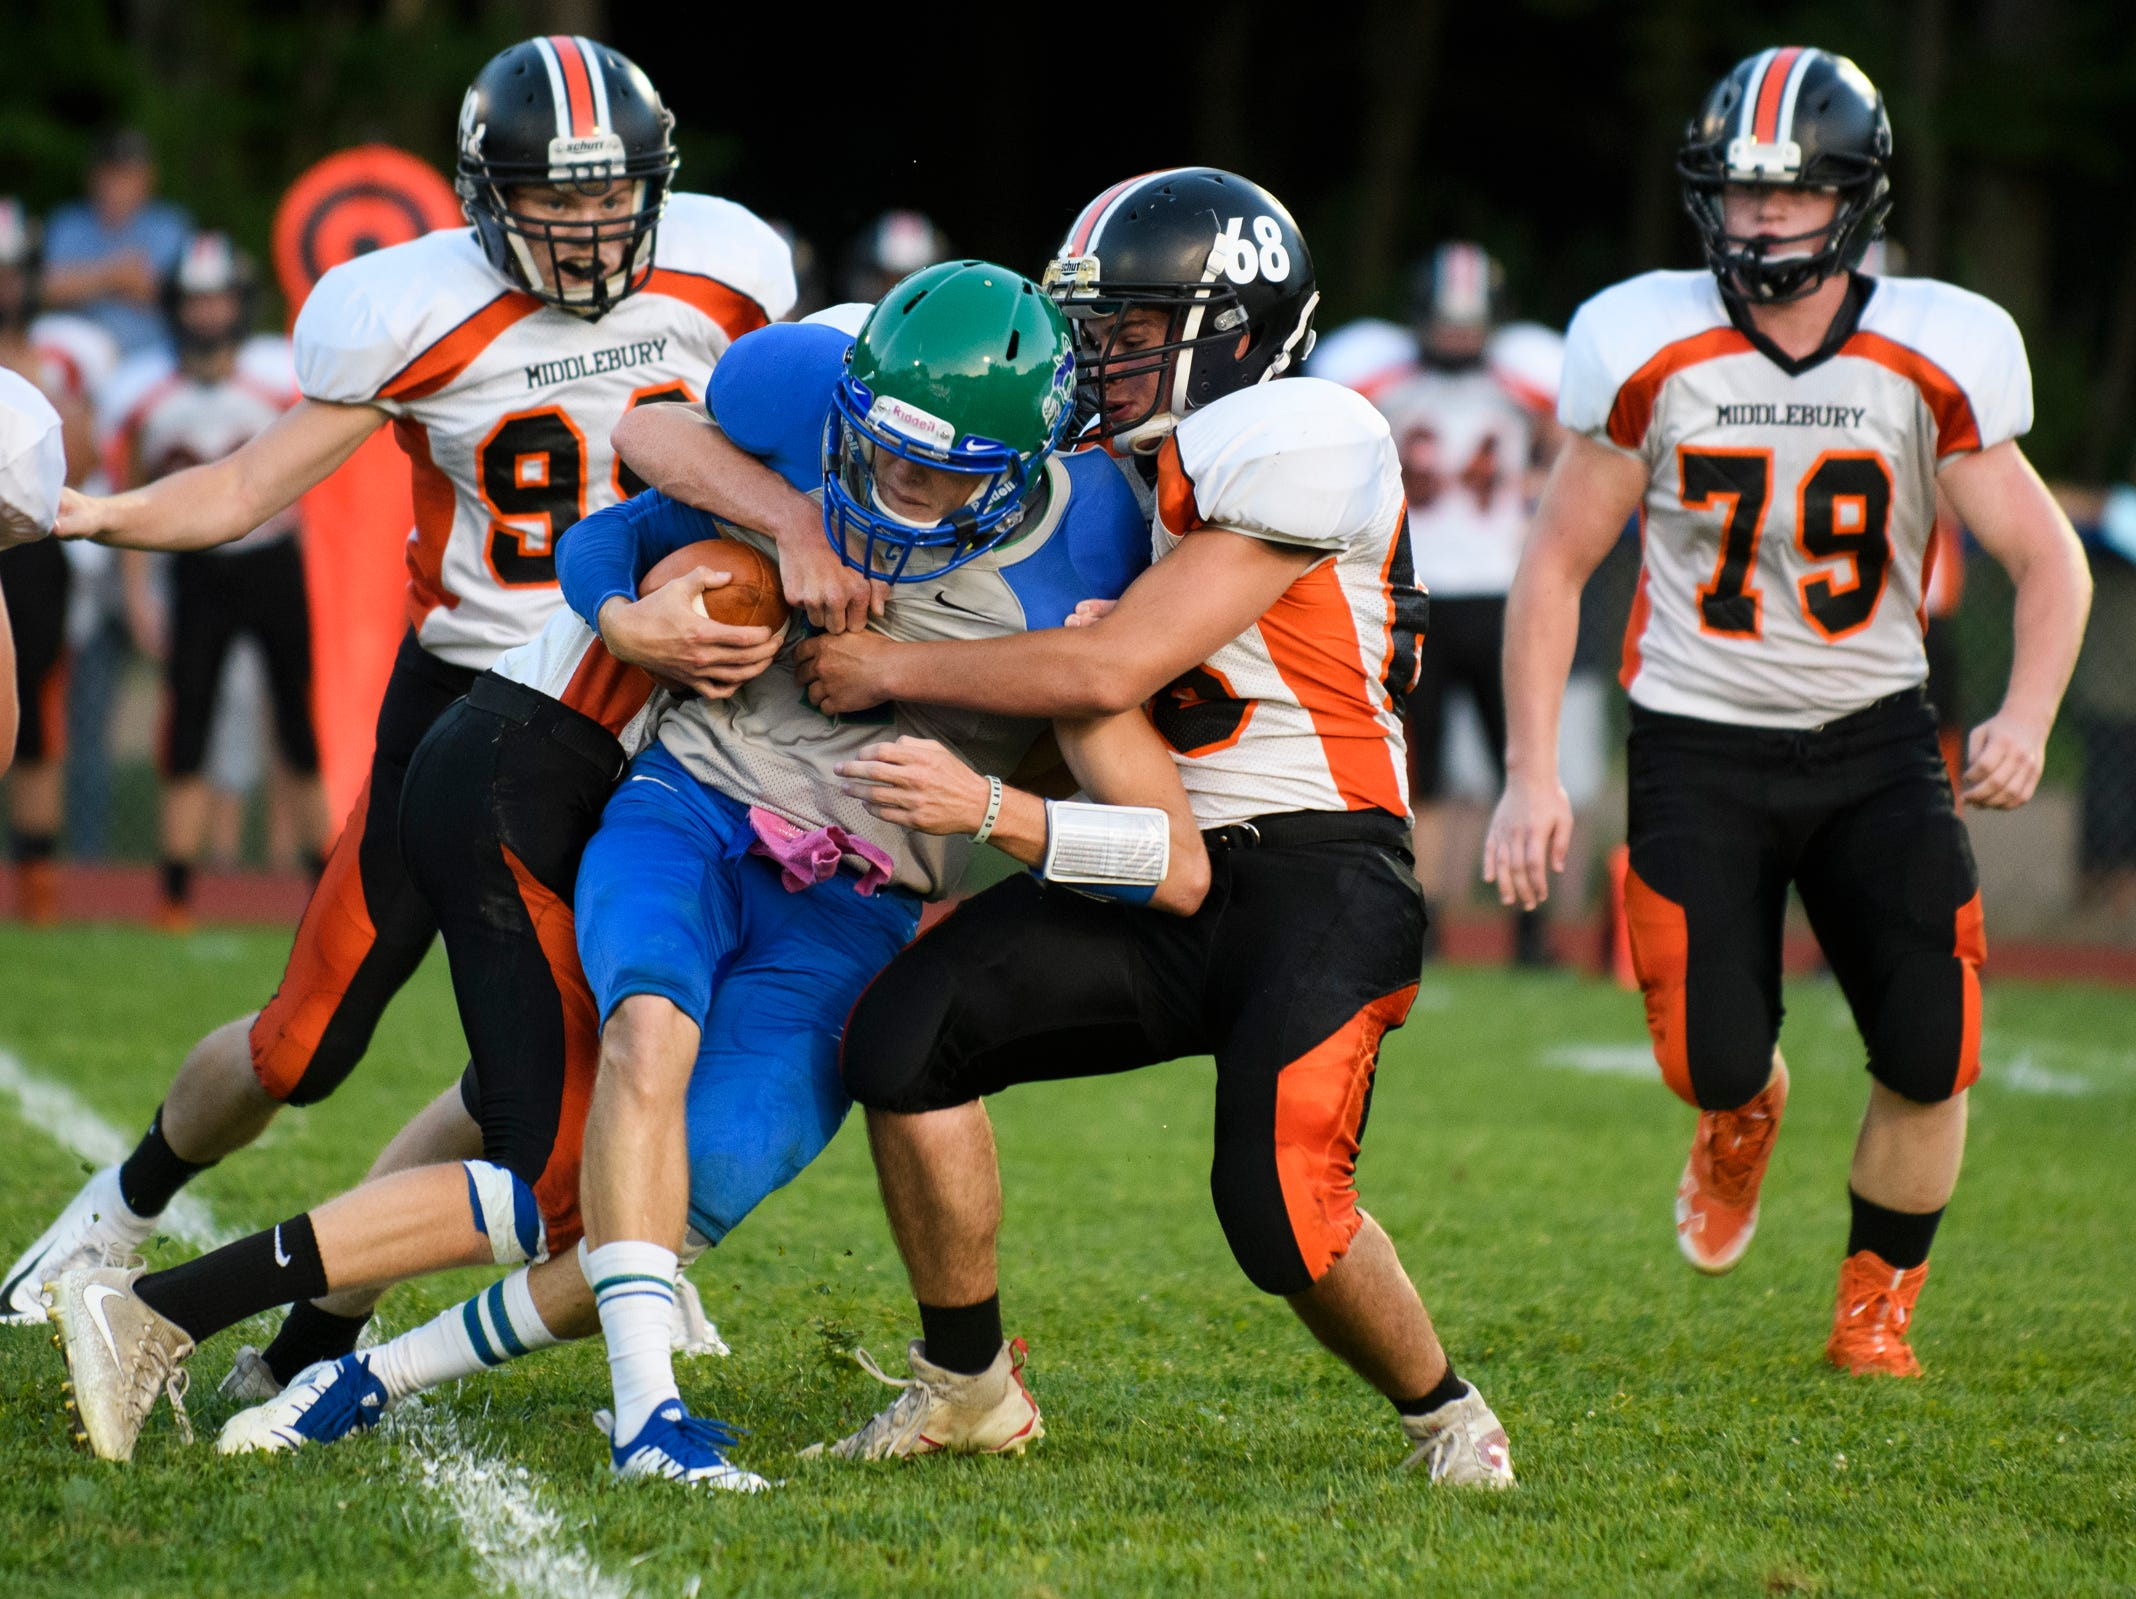 Middlebury's Trysten Quesnel (68) tackles Colchester's Bailey Olson (11)during the boys high school football game between Middlebury and Colchester at Colchester high school on Friday night August 31, 2018 in Colchester.